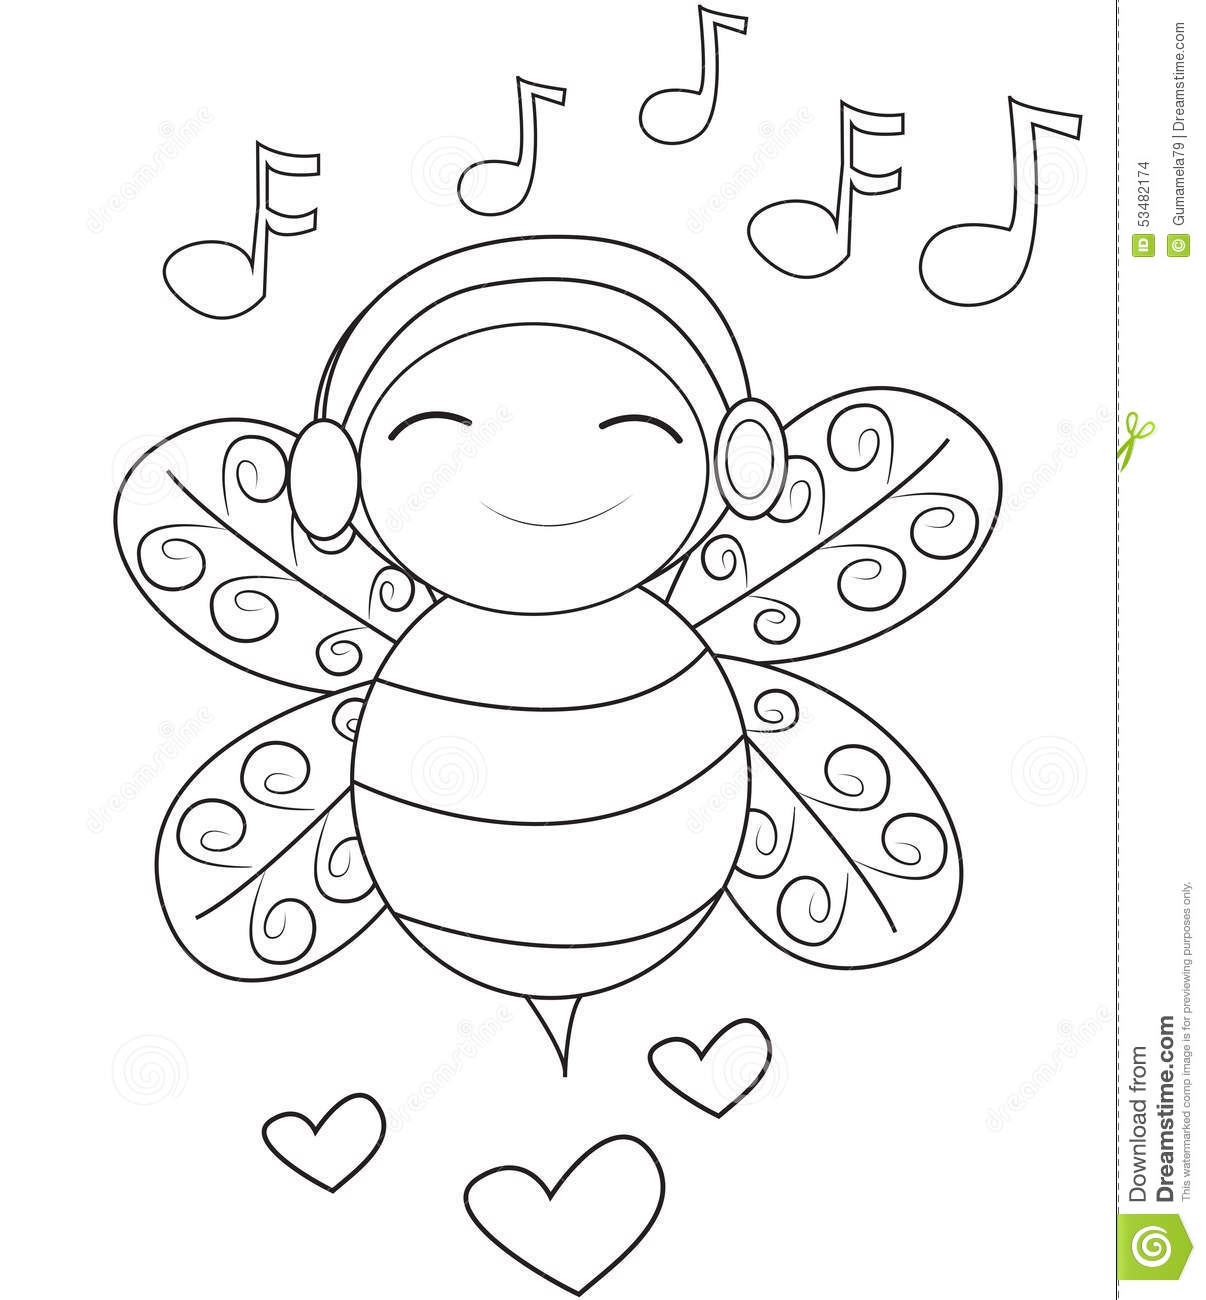 Bee Listening To Music Coloring Page Stock Illustration ...